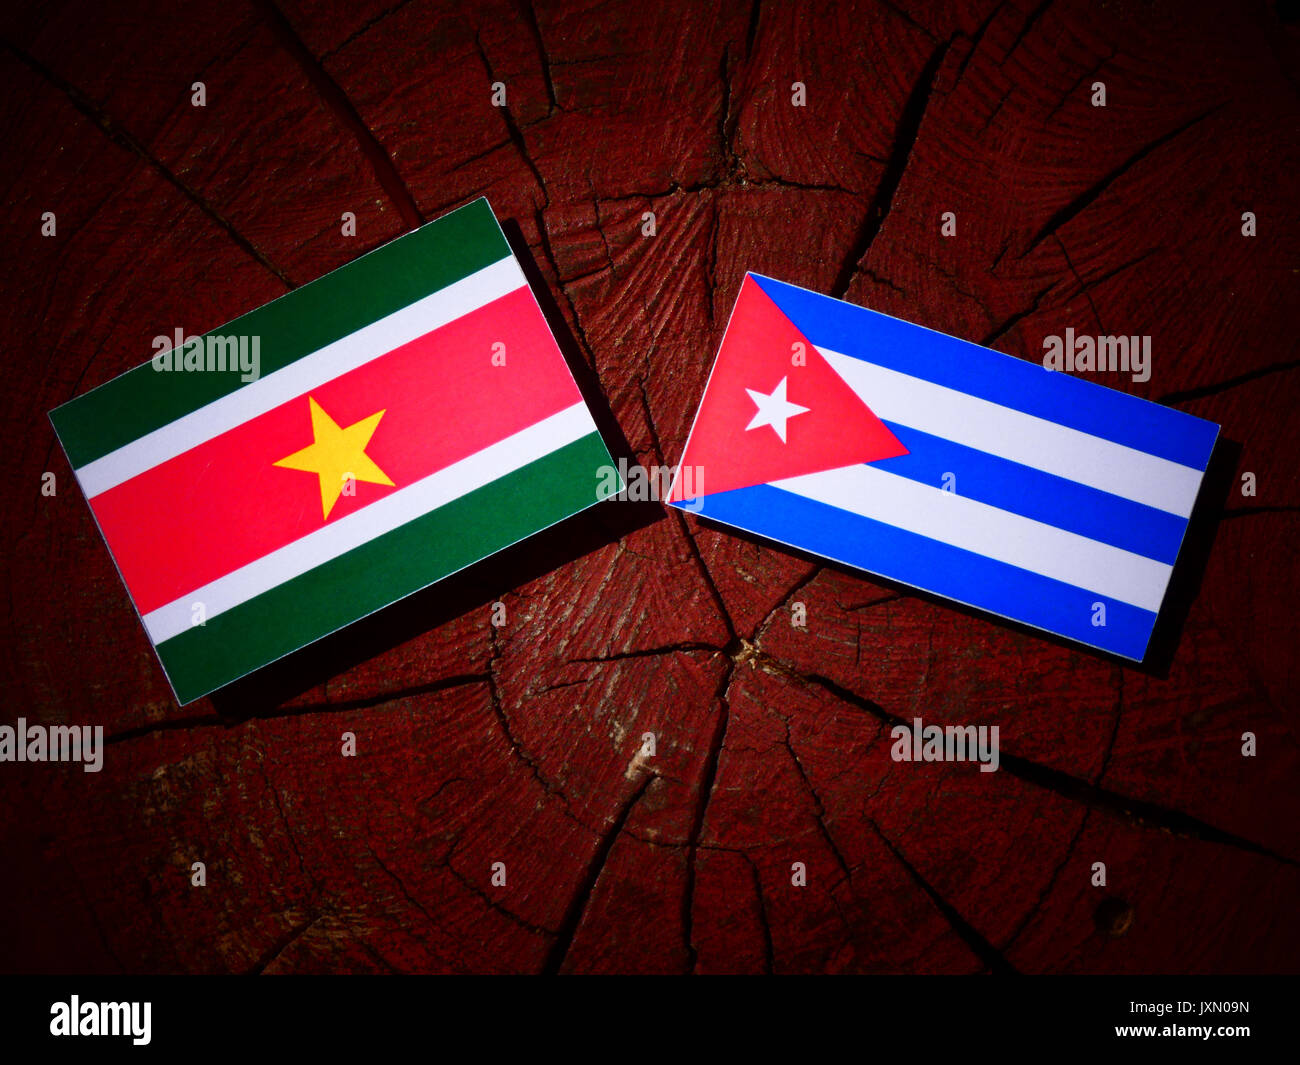 Suriname flag with Cuban flag on a tree stump isolated - Stock Image